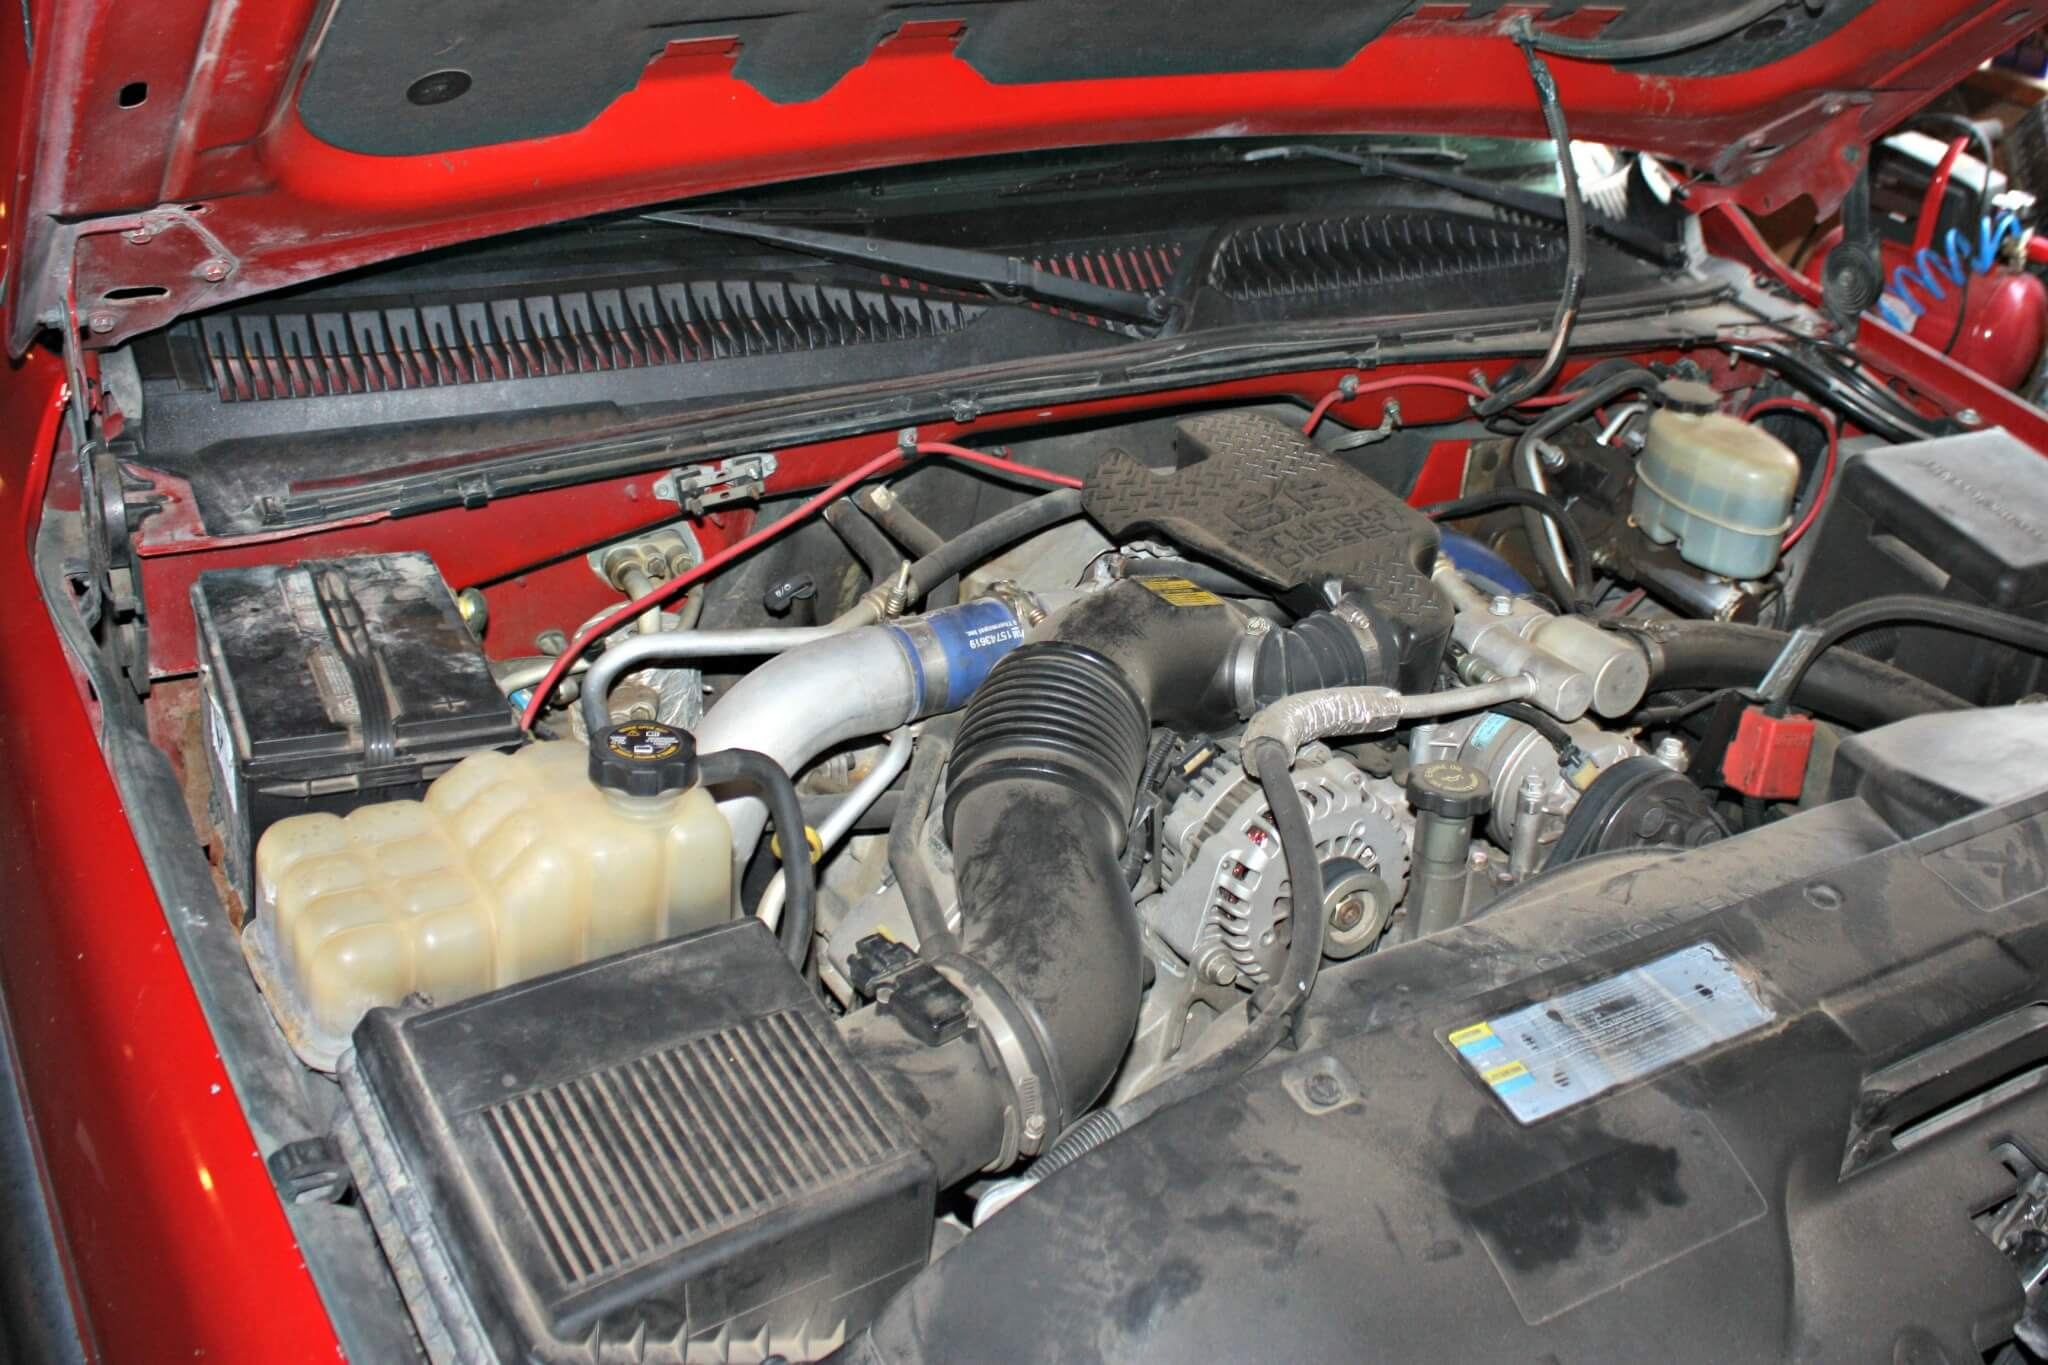 The LB7 Duramax has proven to be a solid and reliable engine platform,